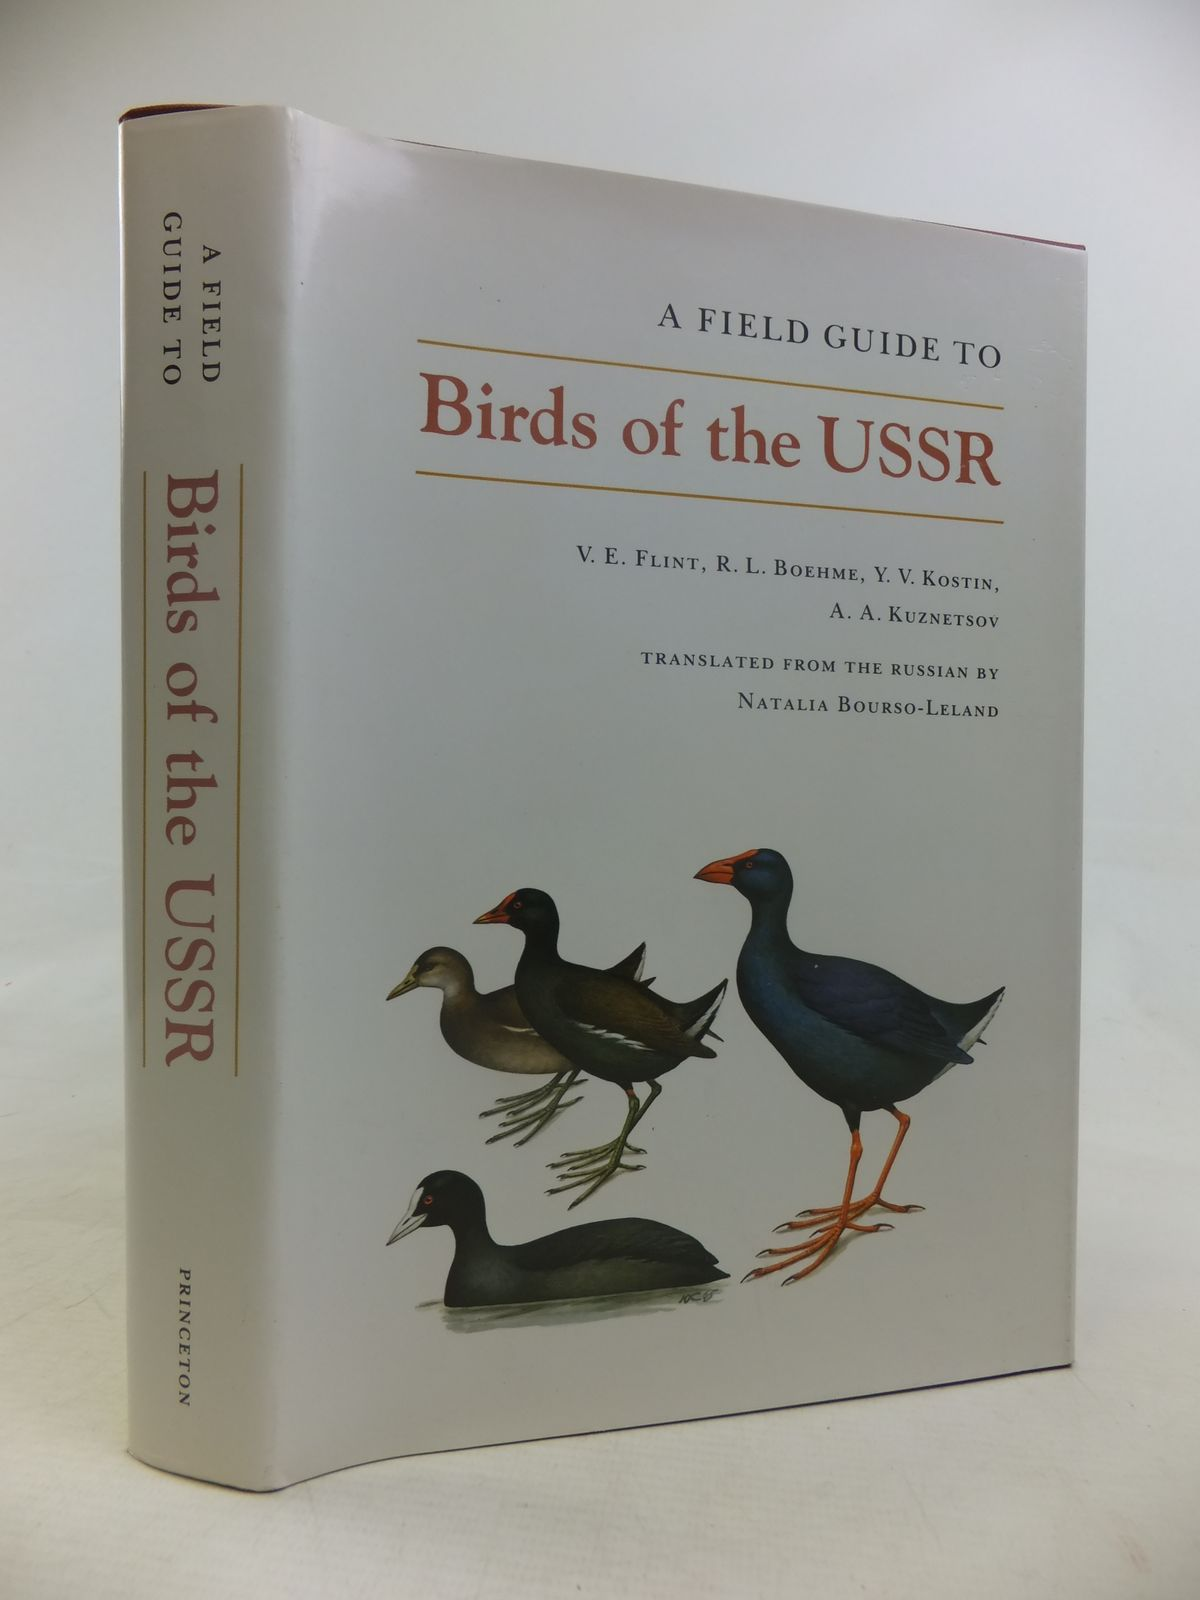 Photo of A FIELD GUIDE TO THE BIRDS OF THE USSR INCLUDING EASTERN EUROPE  AND CENTRAL